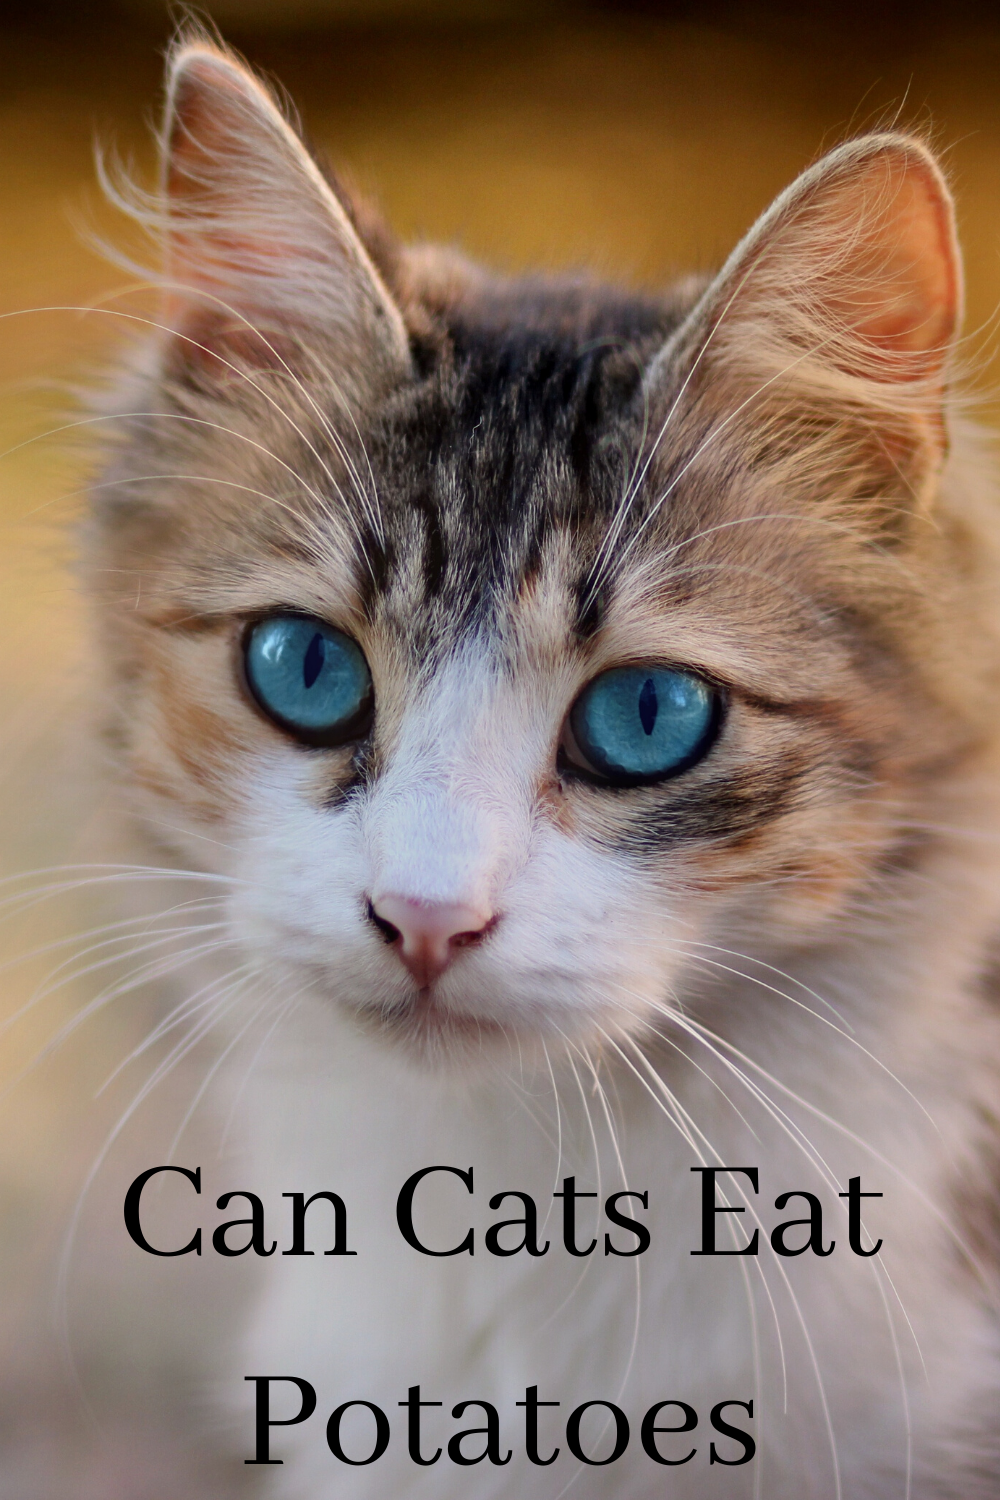 Can Cats Eat Potatoes and Sweet Potatoes? in 2020 Cat